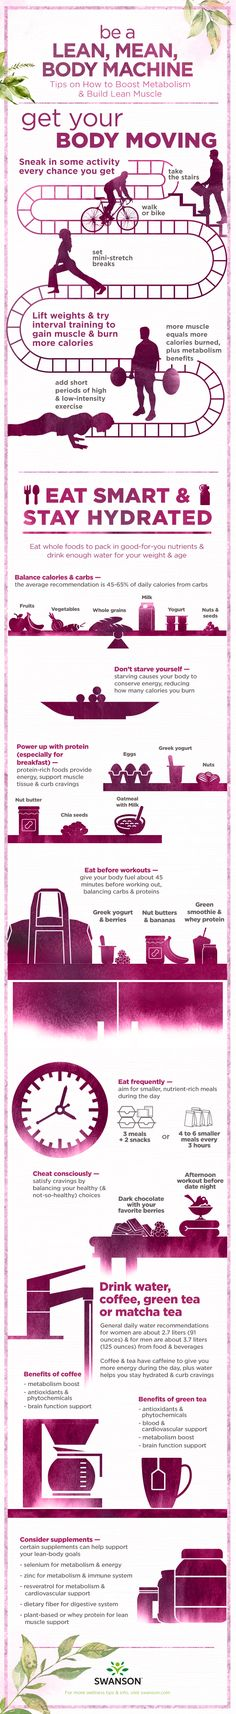 Be a Lean, Mean Body Machine - Tips to Boost Metabolism & Build Lean Muscle Infographic Swanson Health